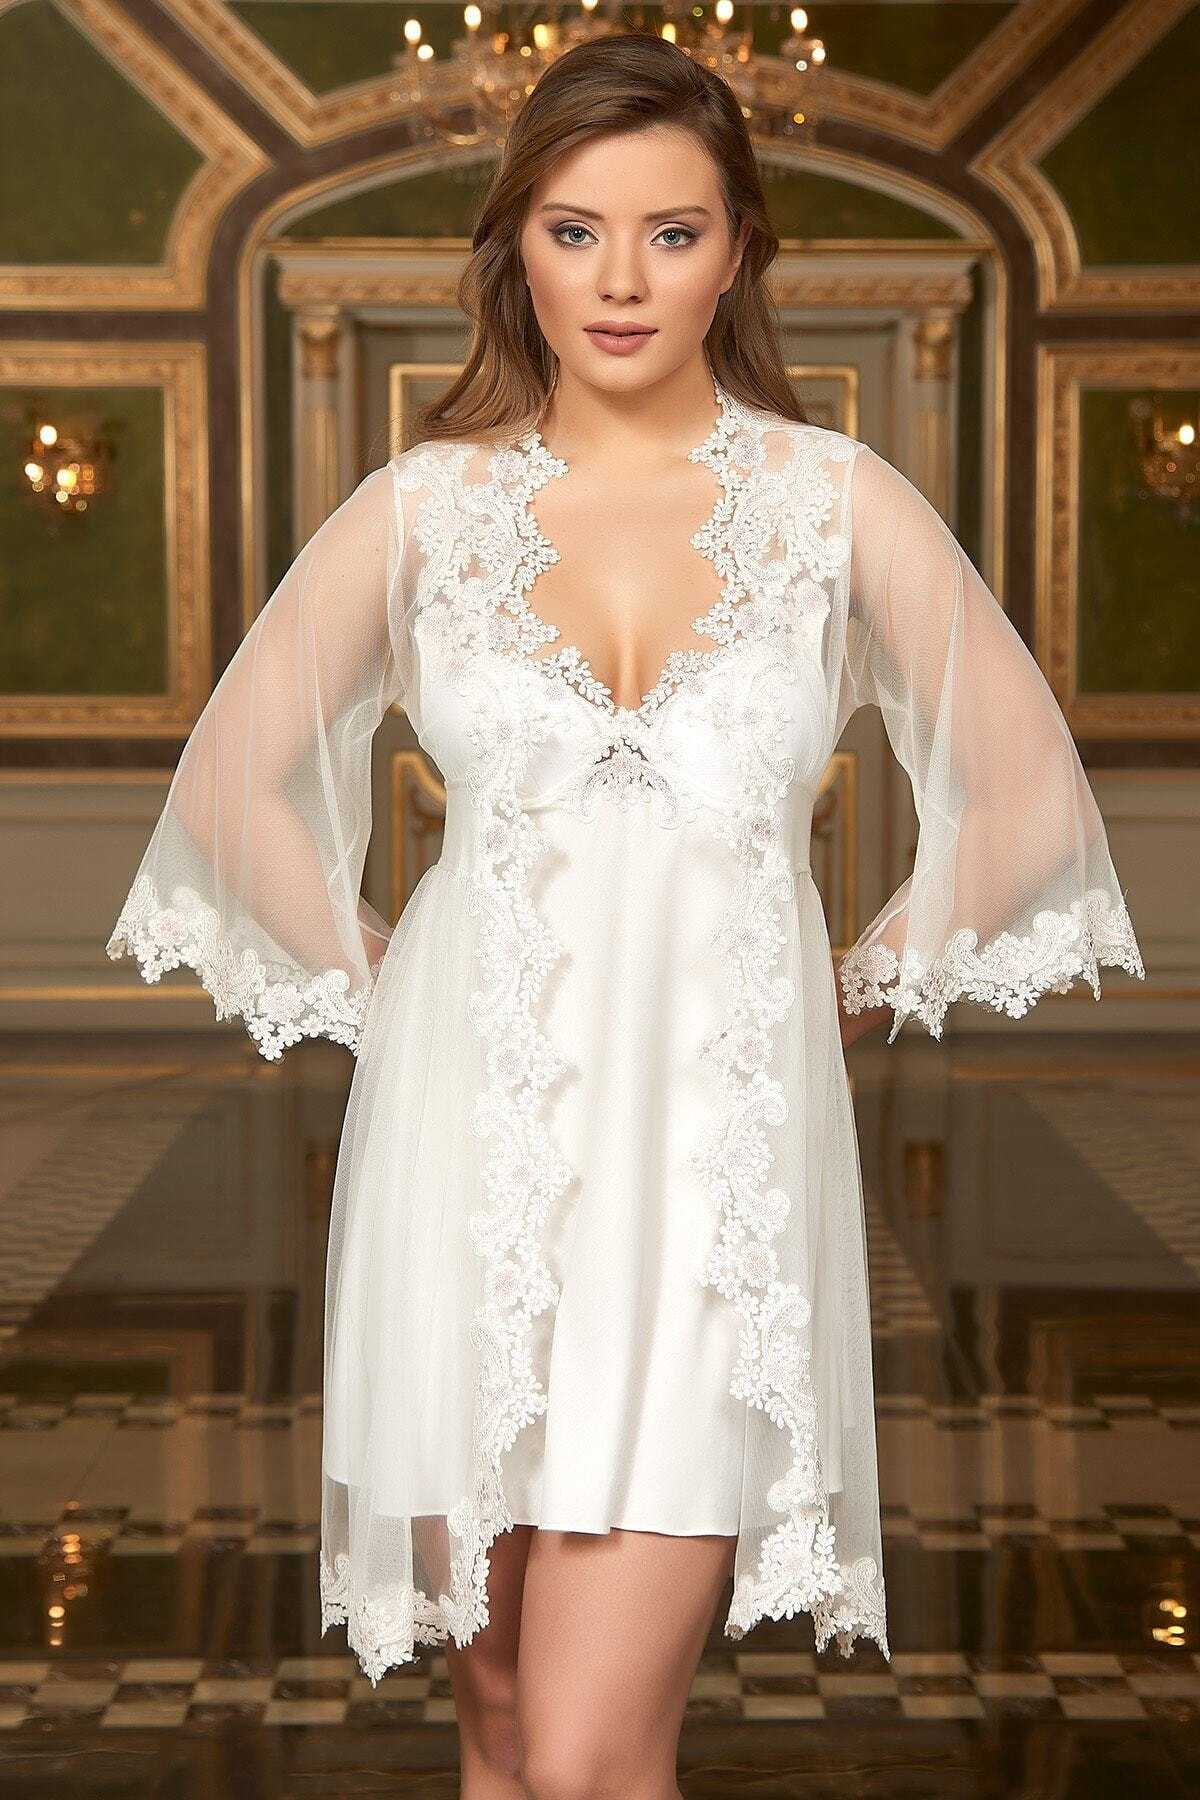 6PCS Robe Sleep Suit Pajamas Set Sexy Lace Stain White Lace Detailed Combed Cotton Nightgown Set Made in Turkey Sale Bride Set